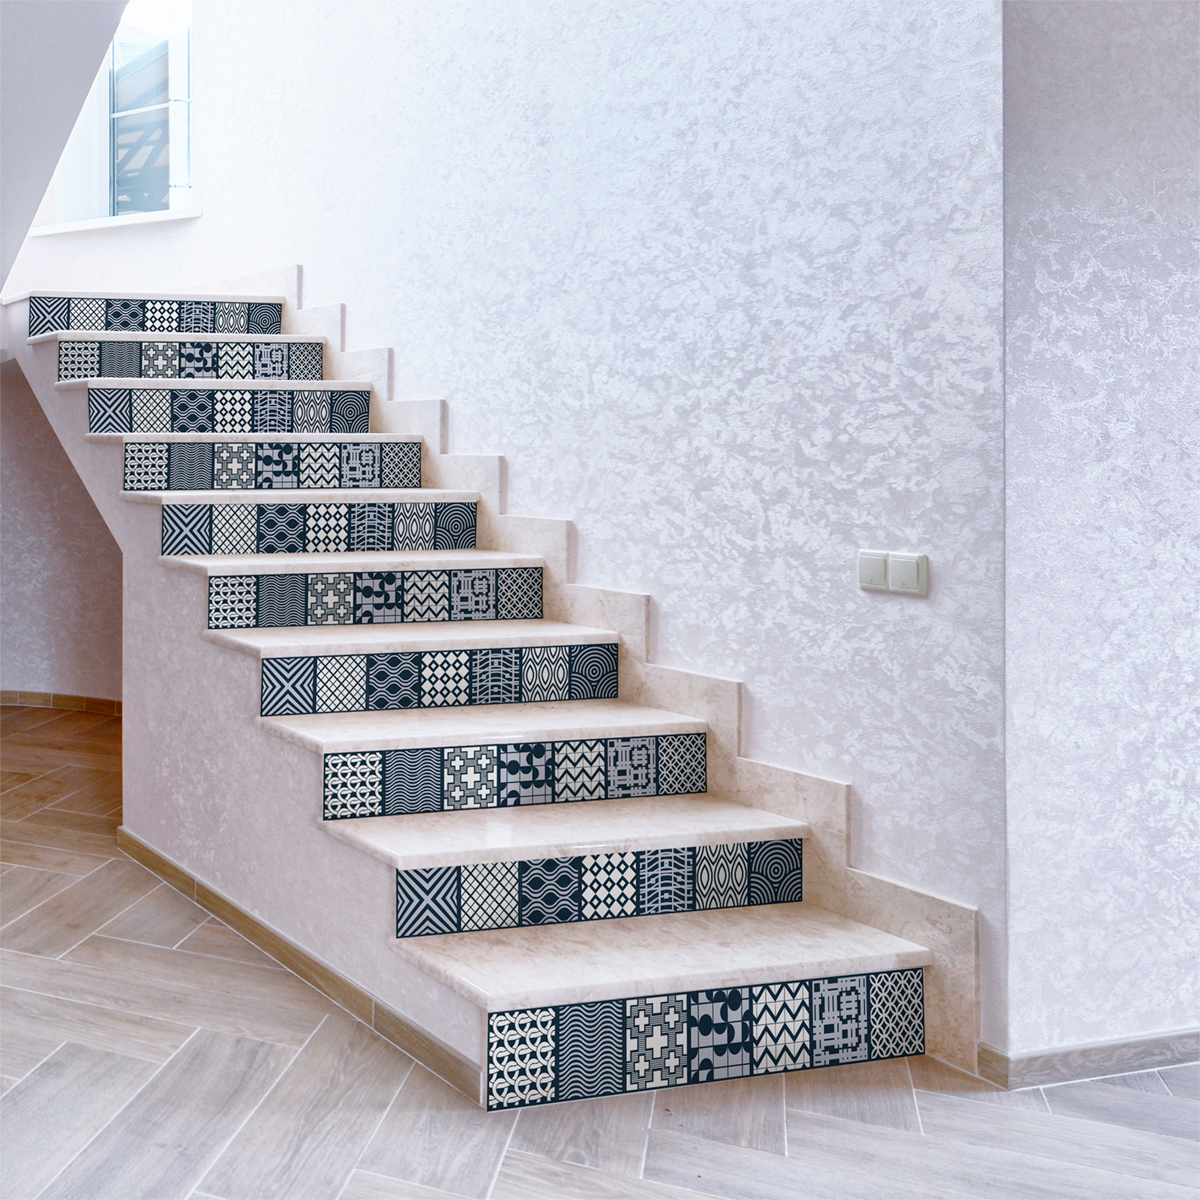 stickers escalier carreaux de ciment yorik x 2 ambiance sticker col stairs ros b060 stickers. Black Bedroom Furniture Sets. Home Design Ideas